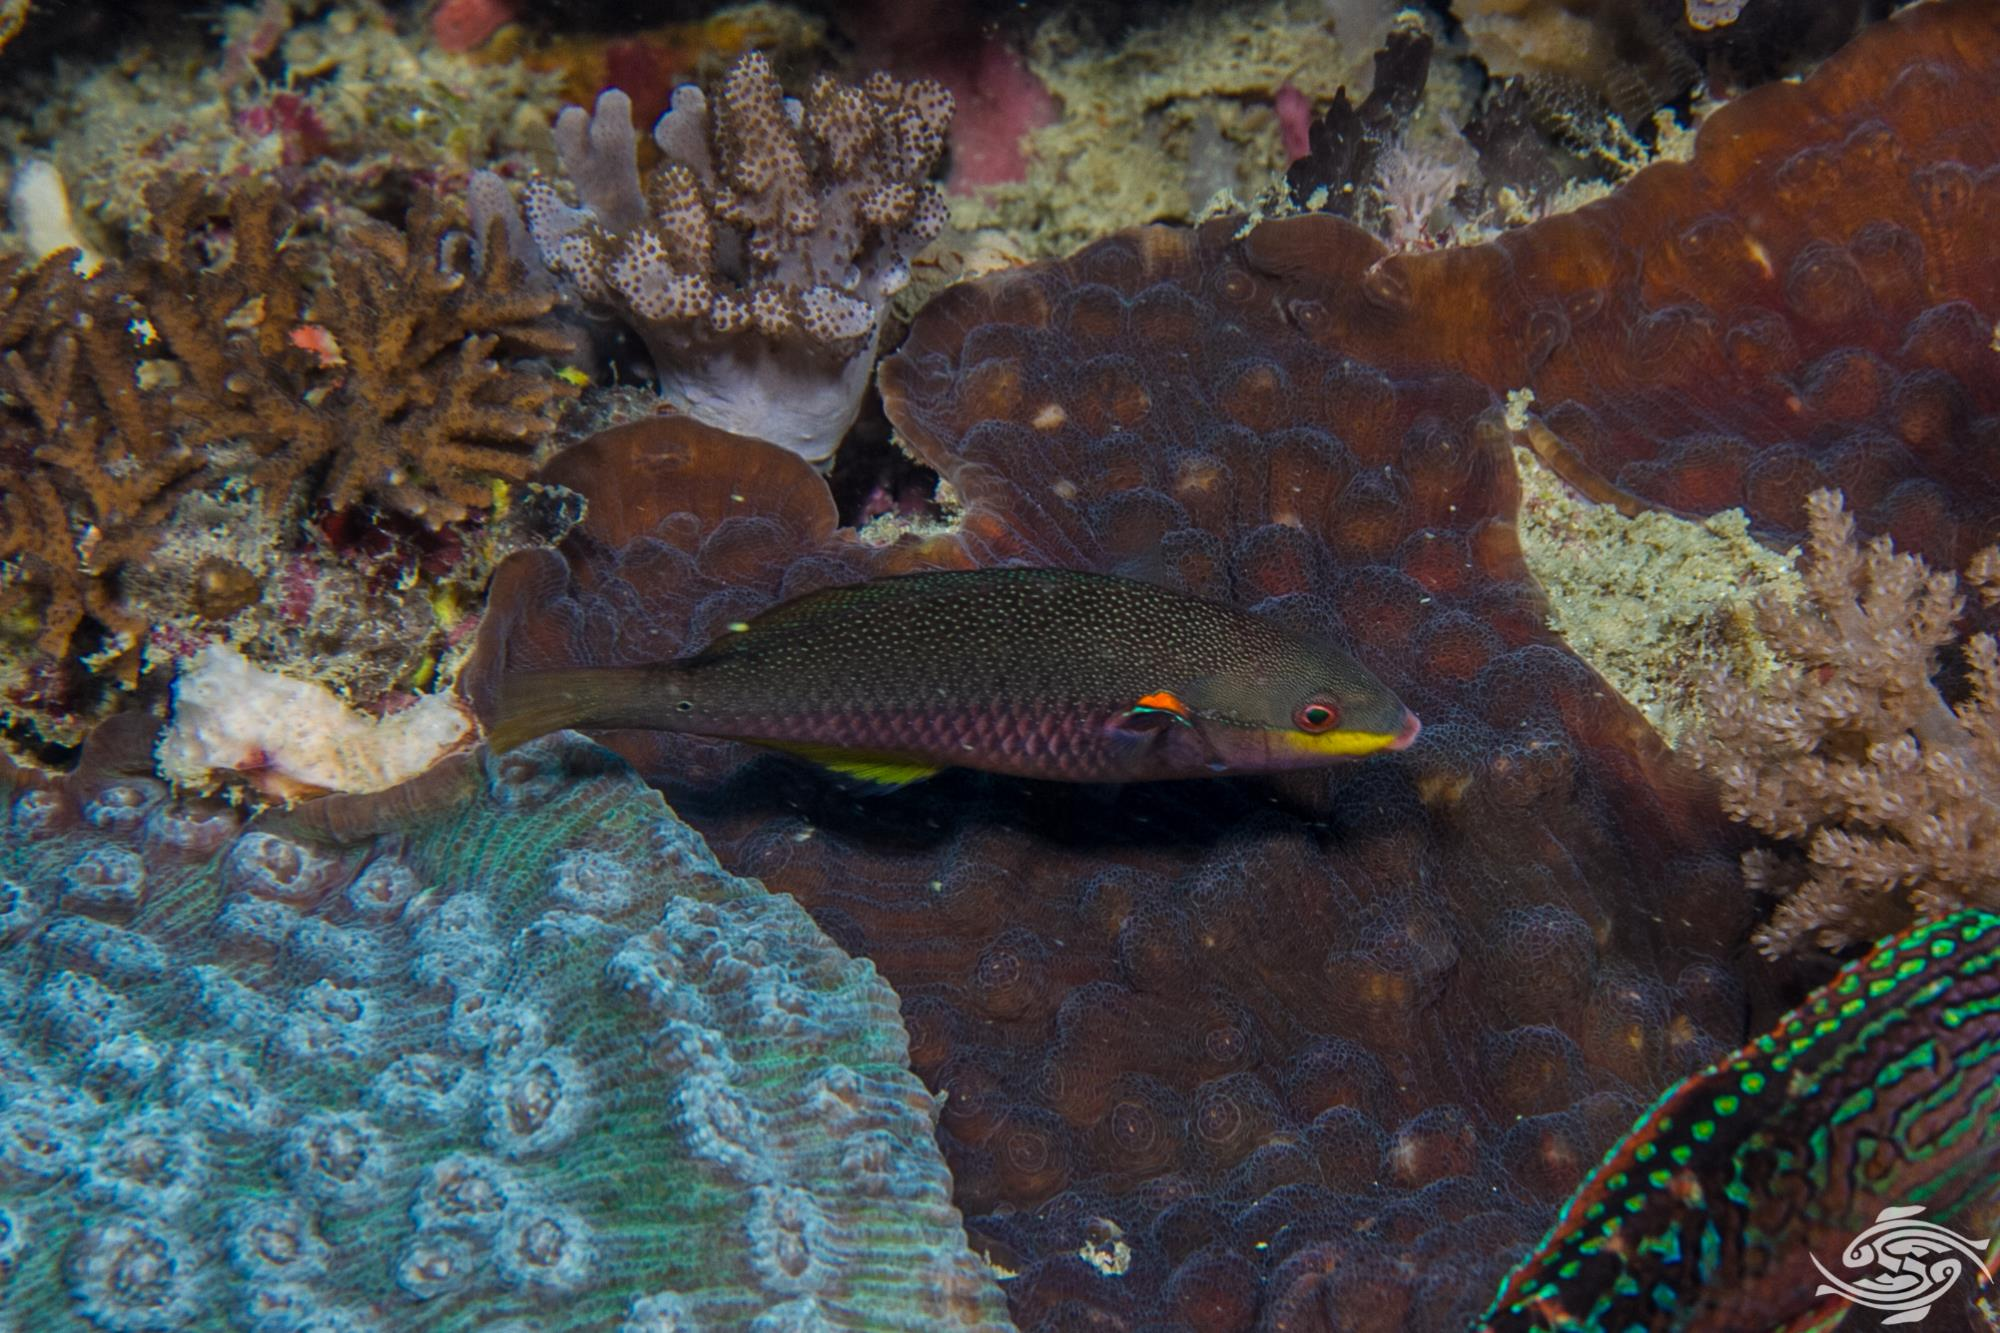 Female Blue-Lined Wrasse ( Stethojulis albovittata ) is also known as the Rainbowfish